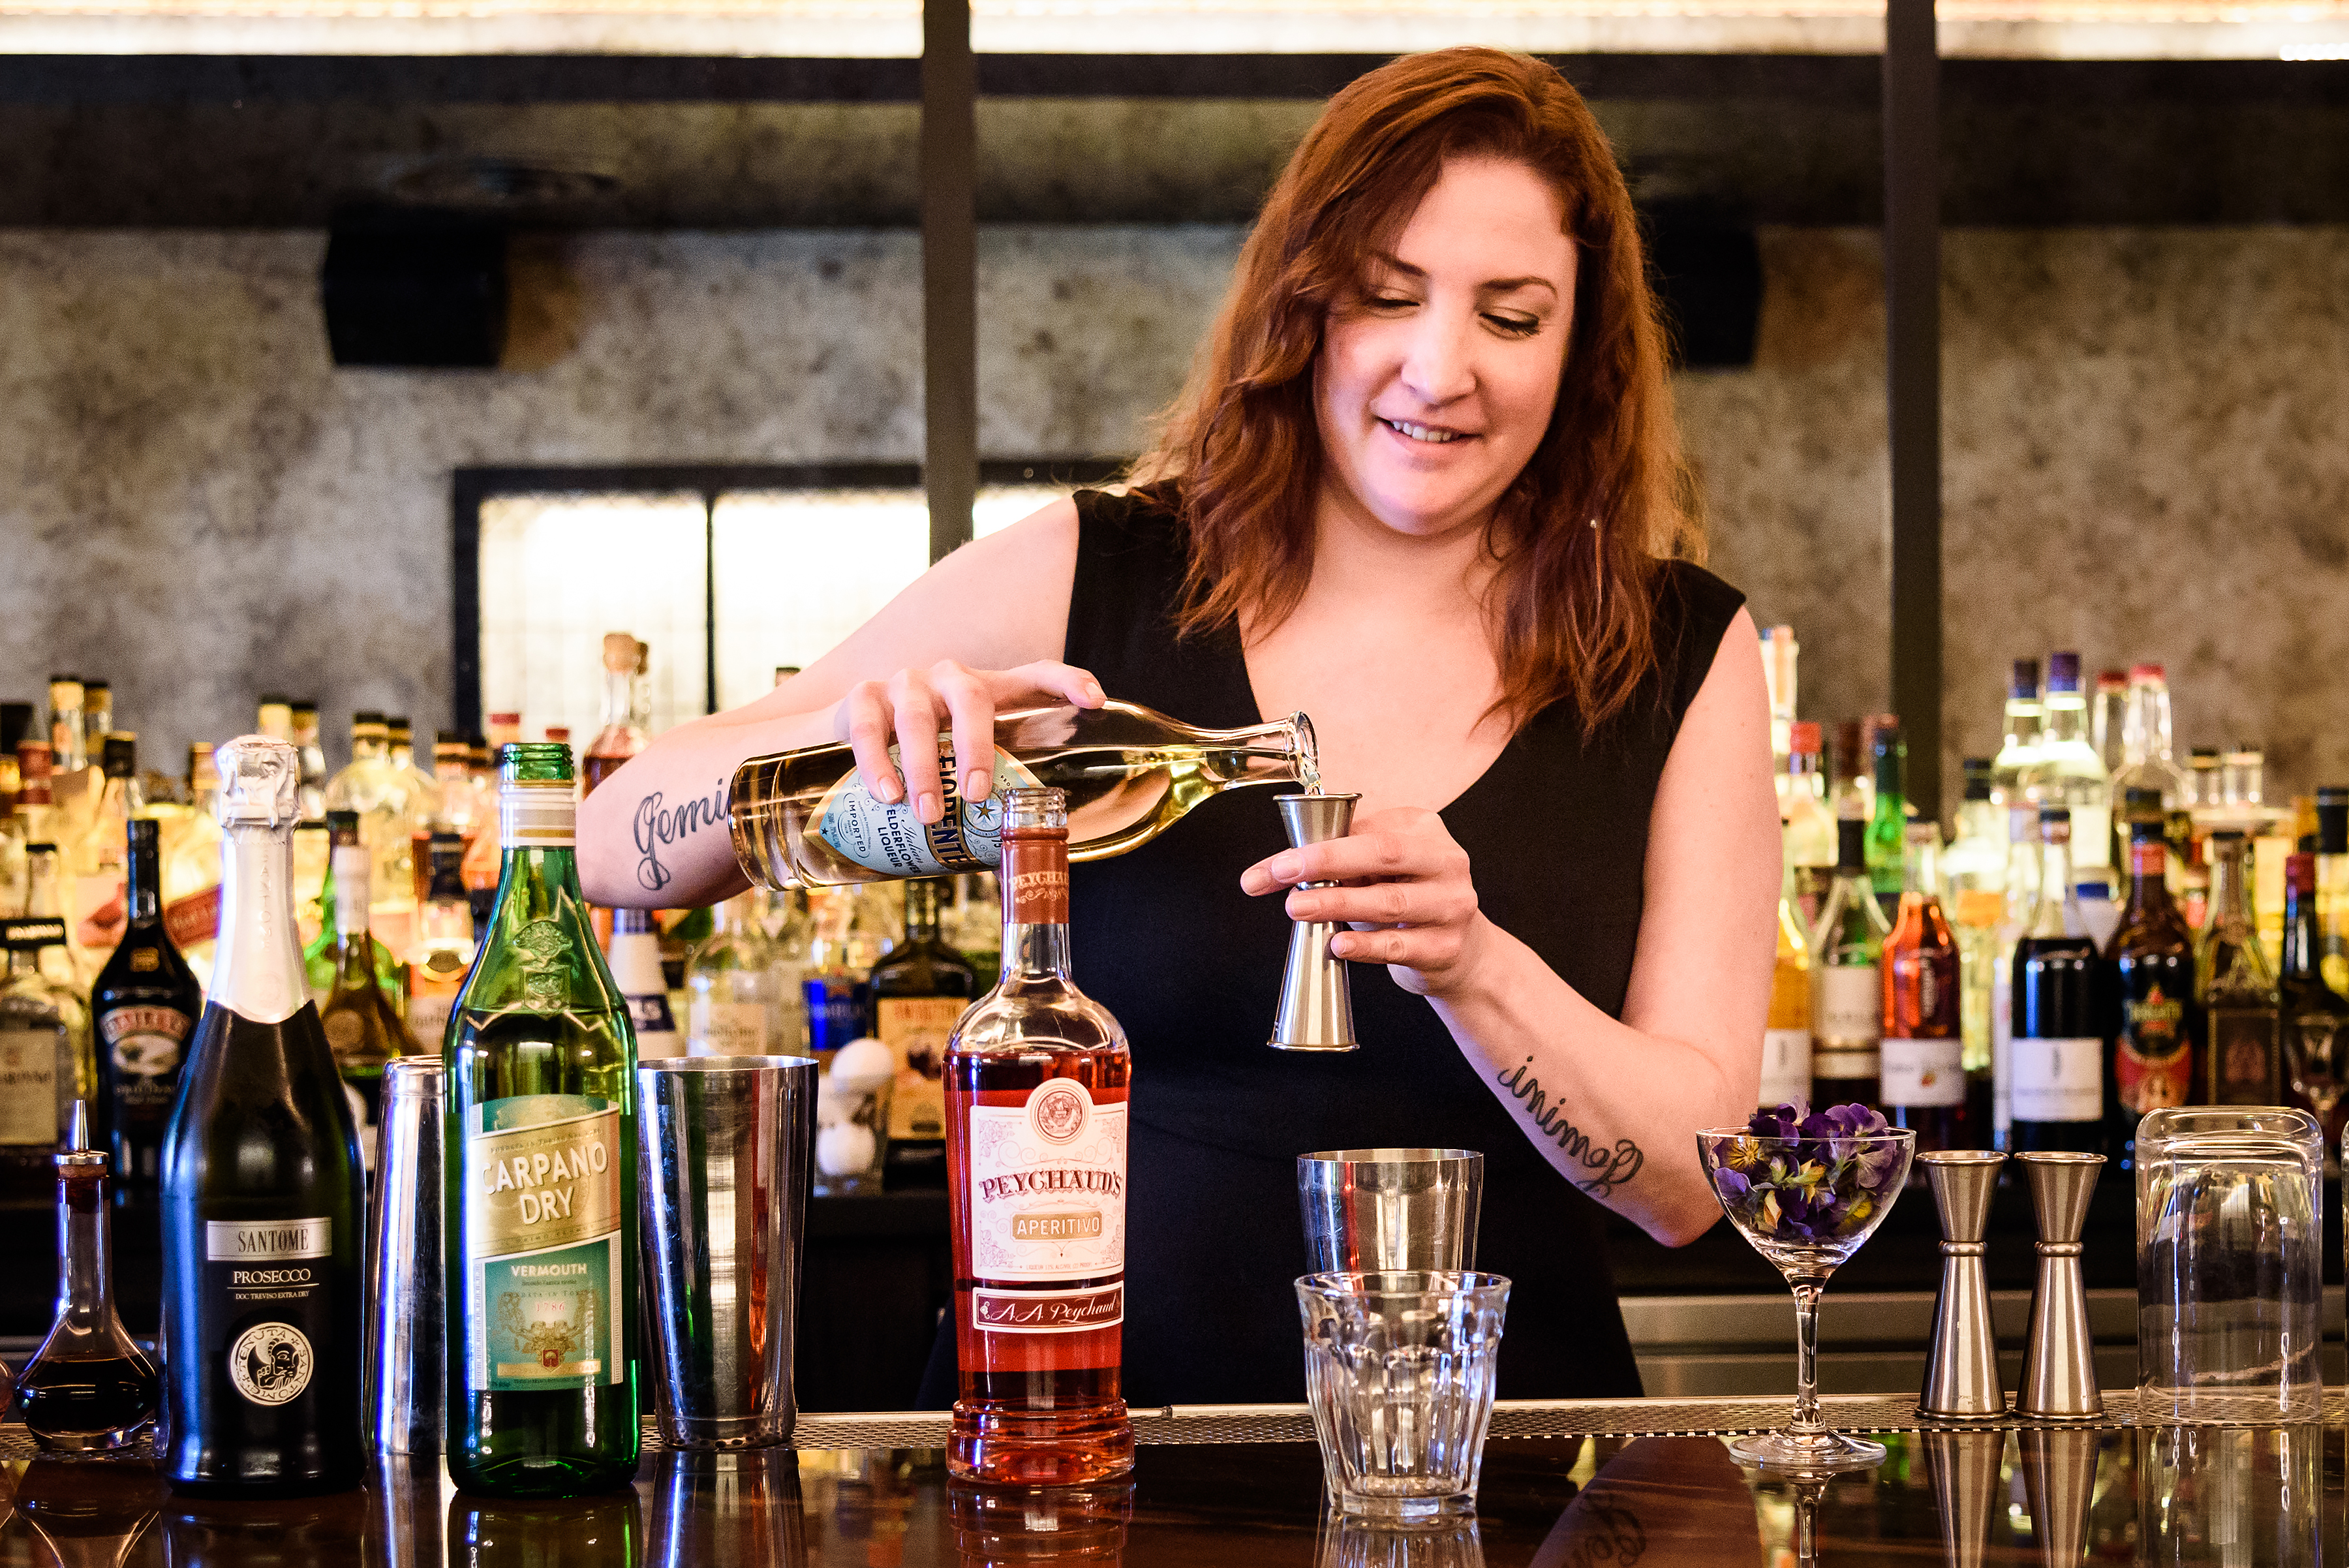 Cristiana DeLucca behind the bar at Formento's